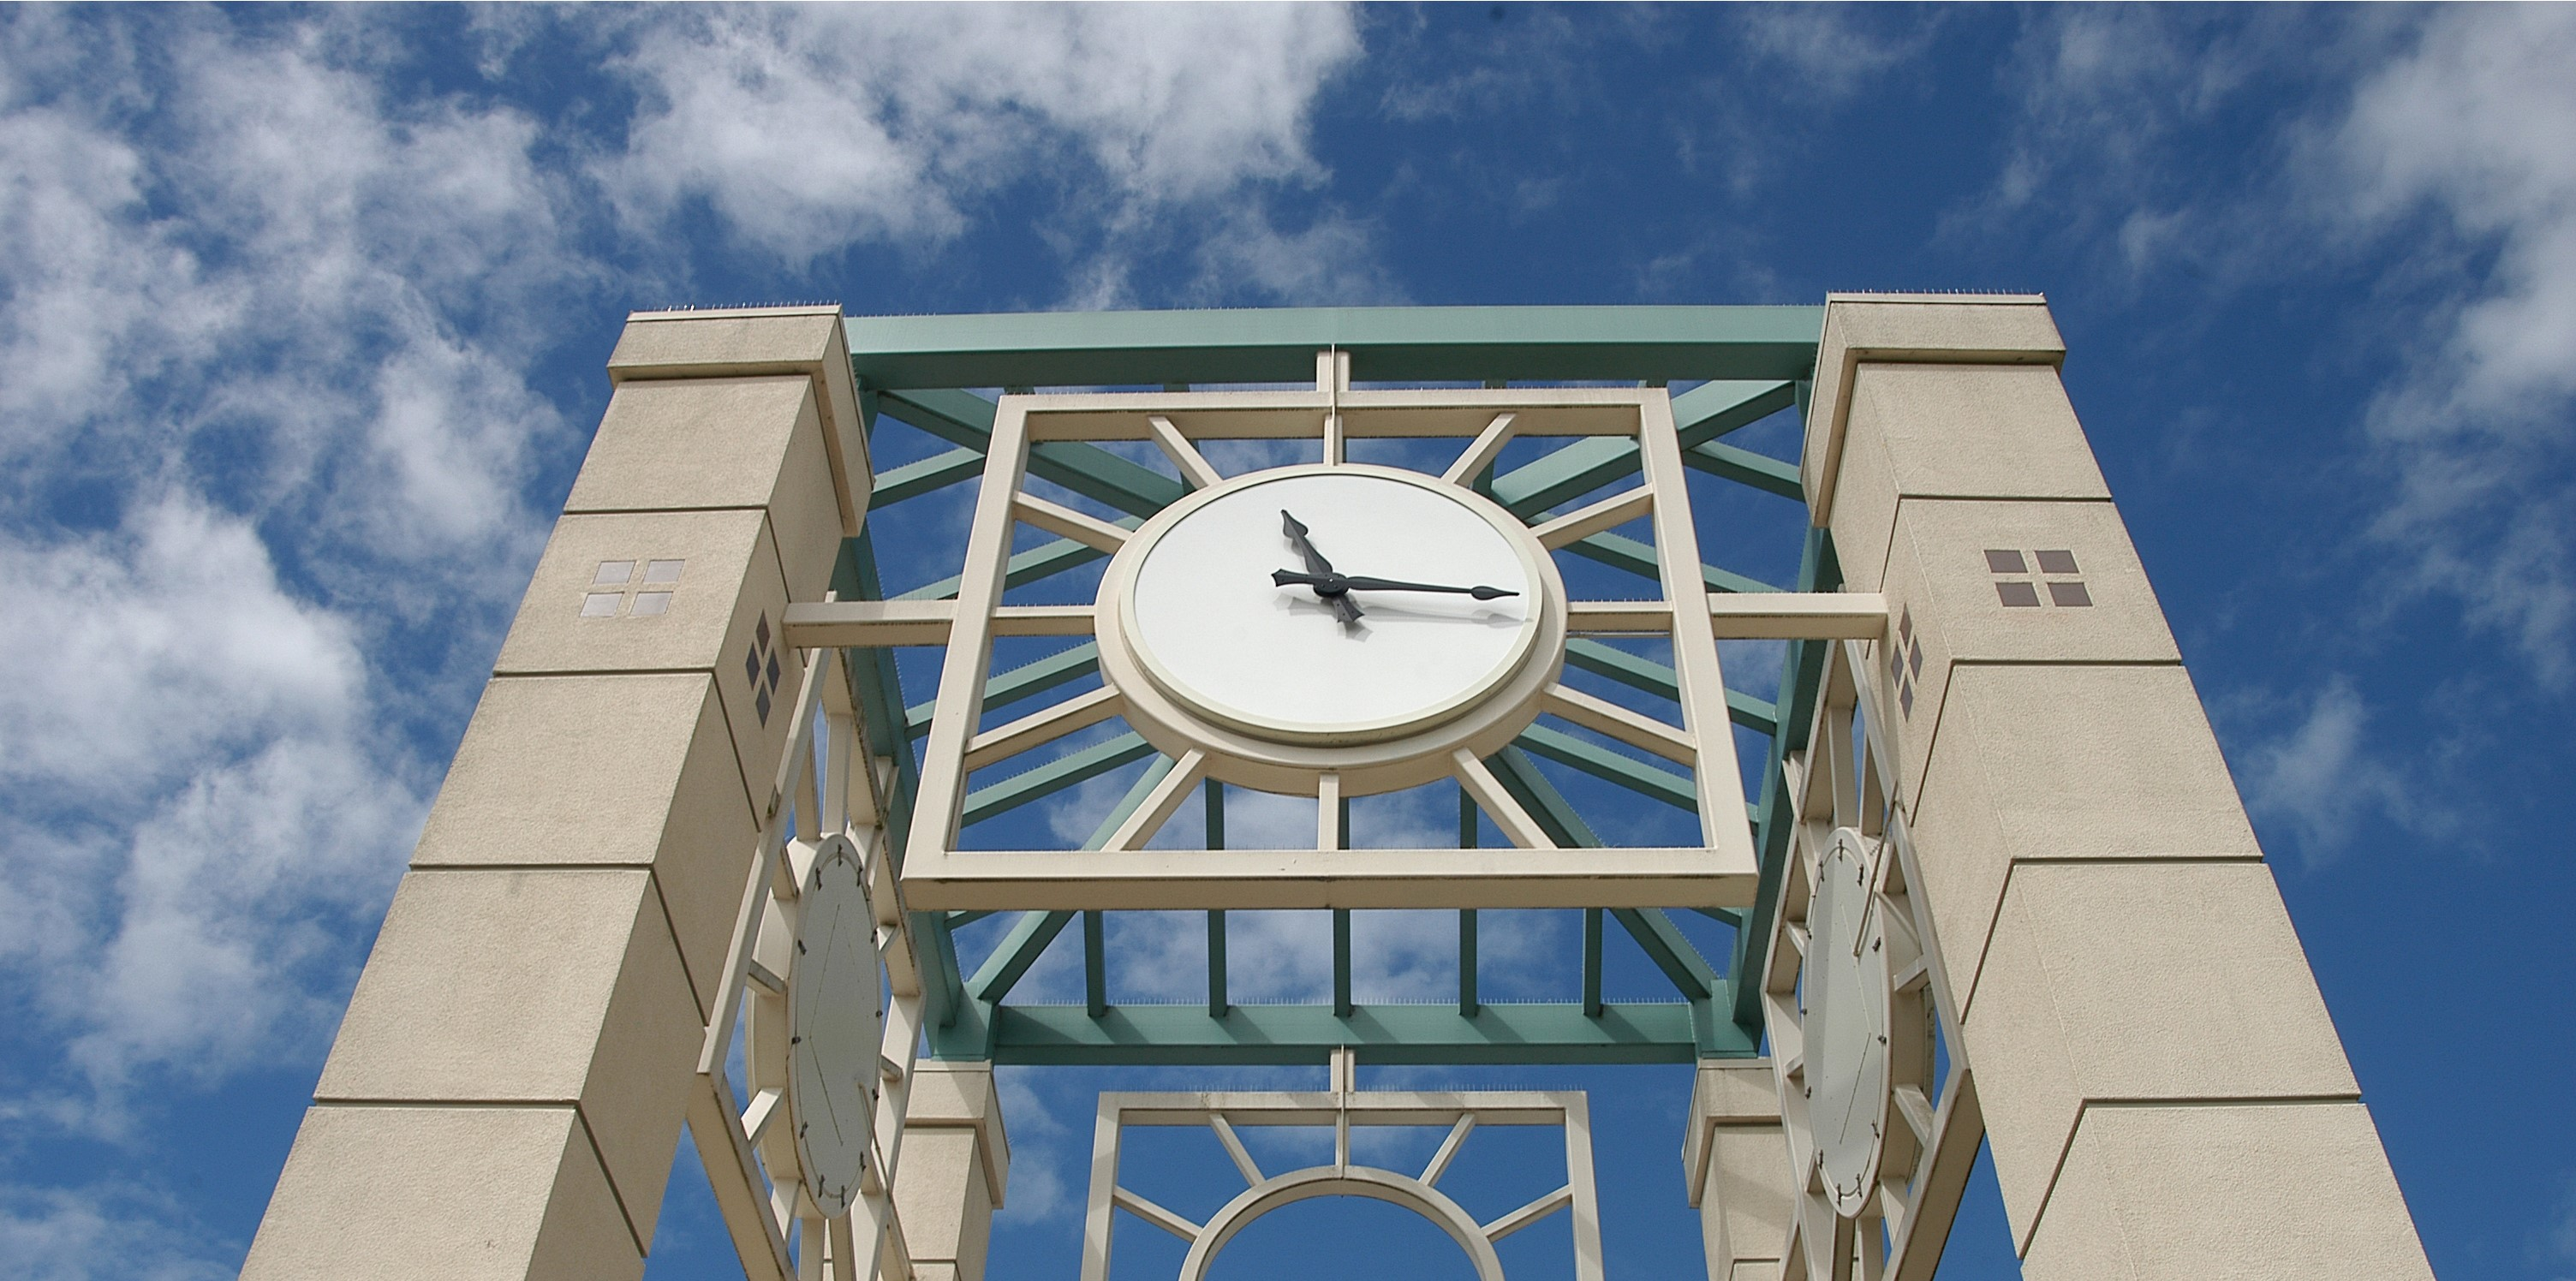 campus clock tower